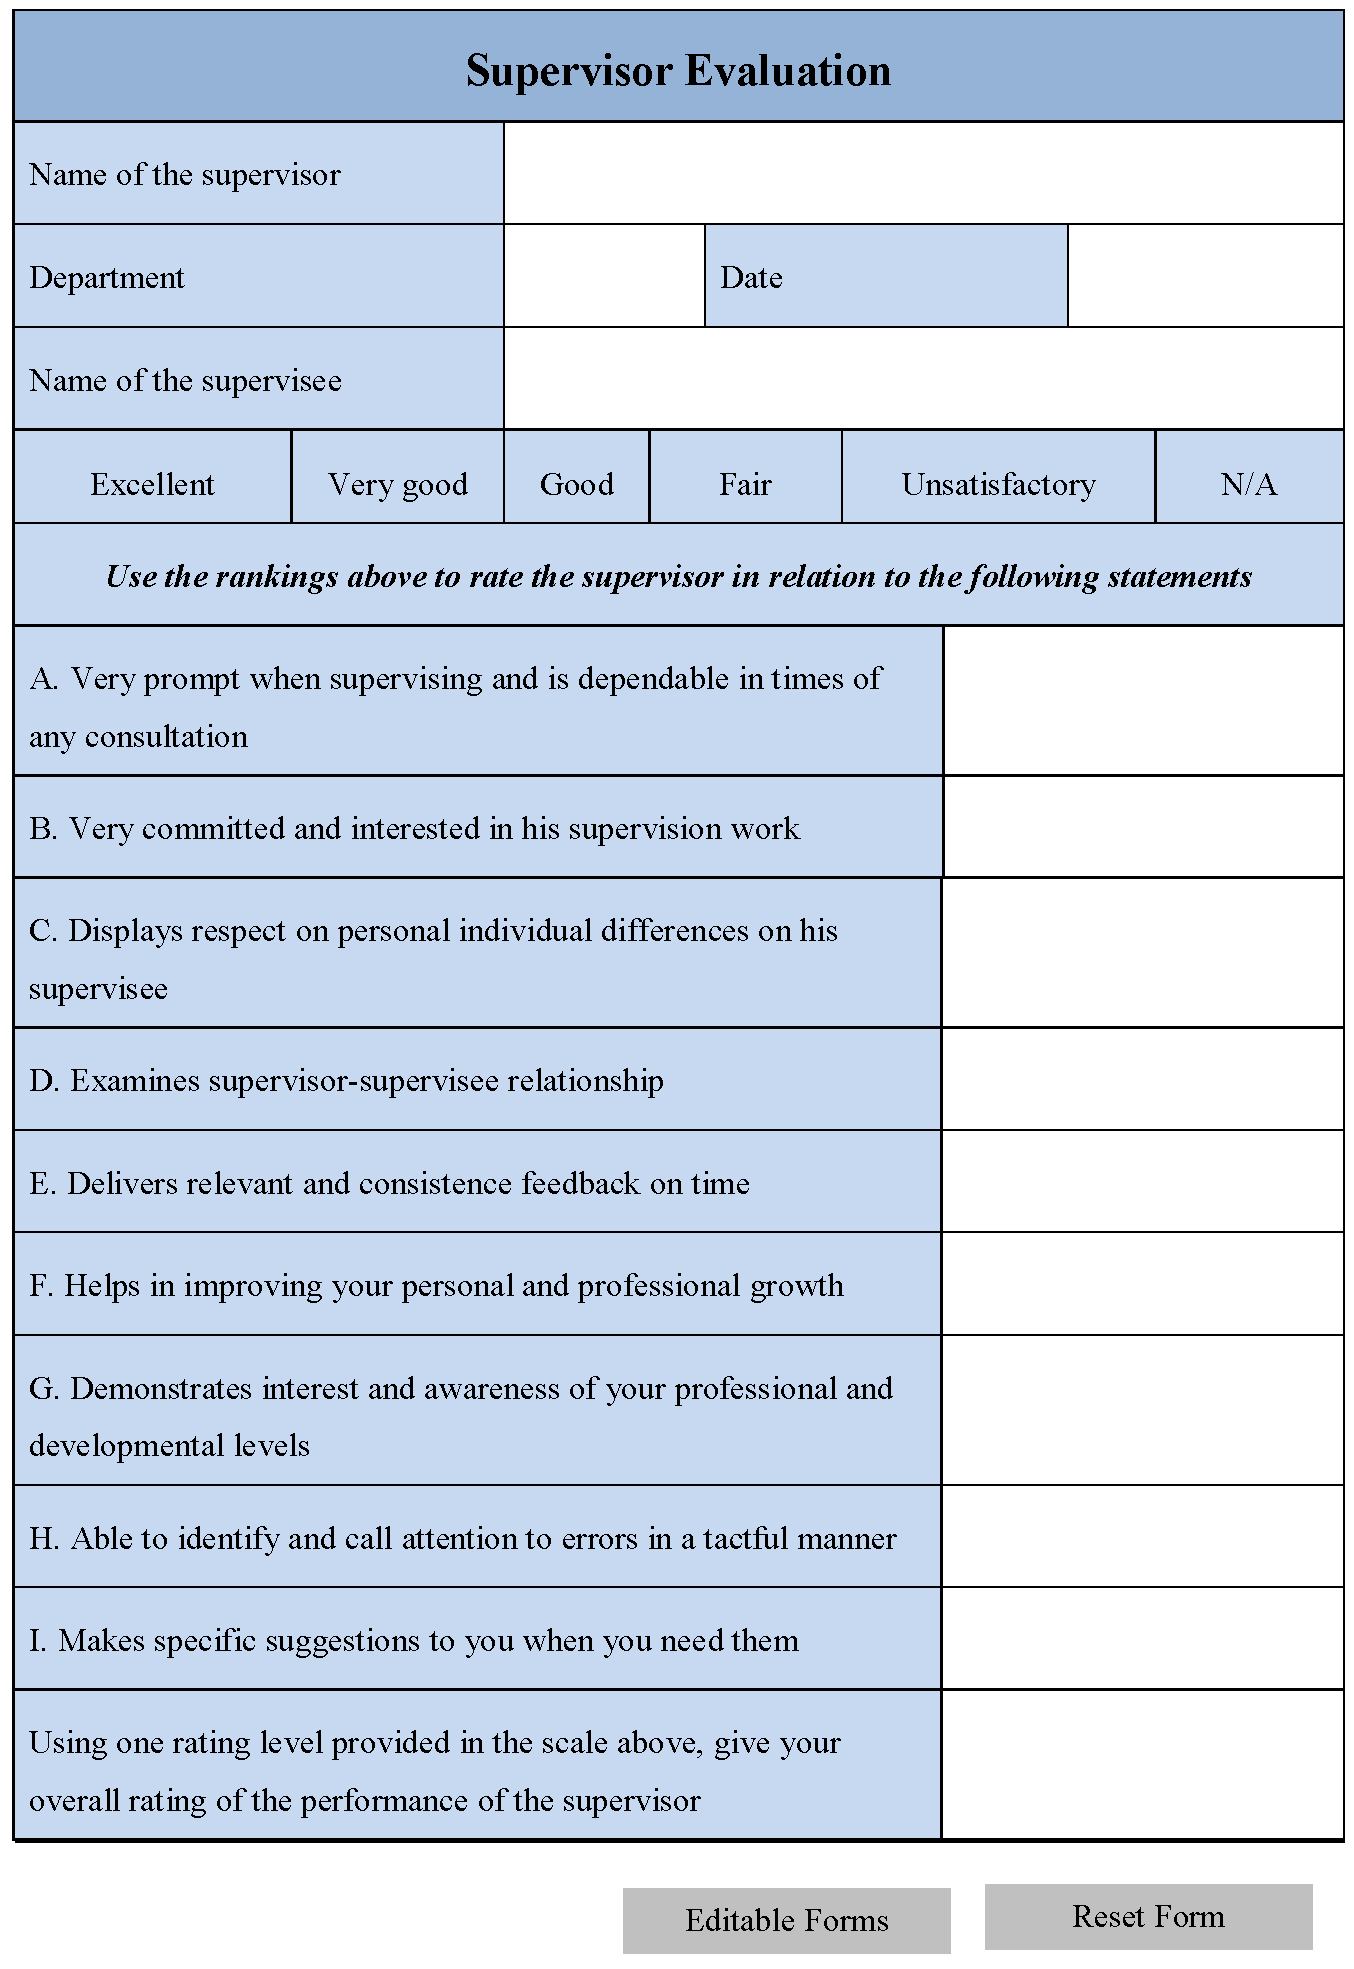 Supervisor Evaluation Form